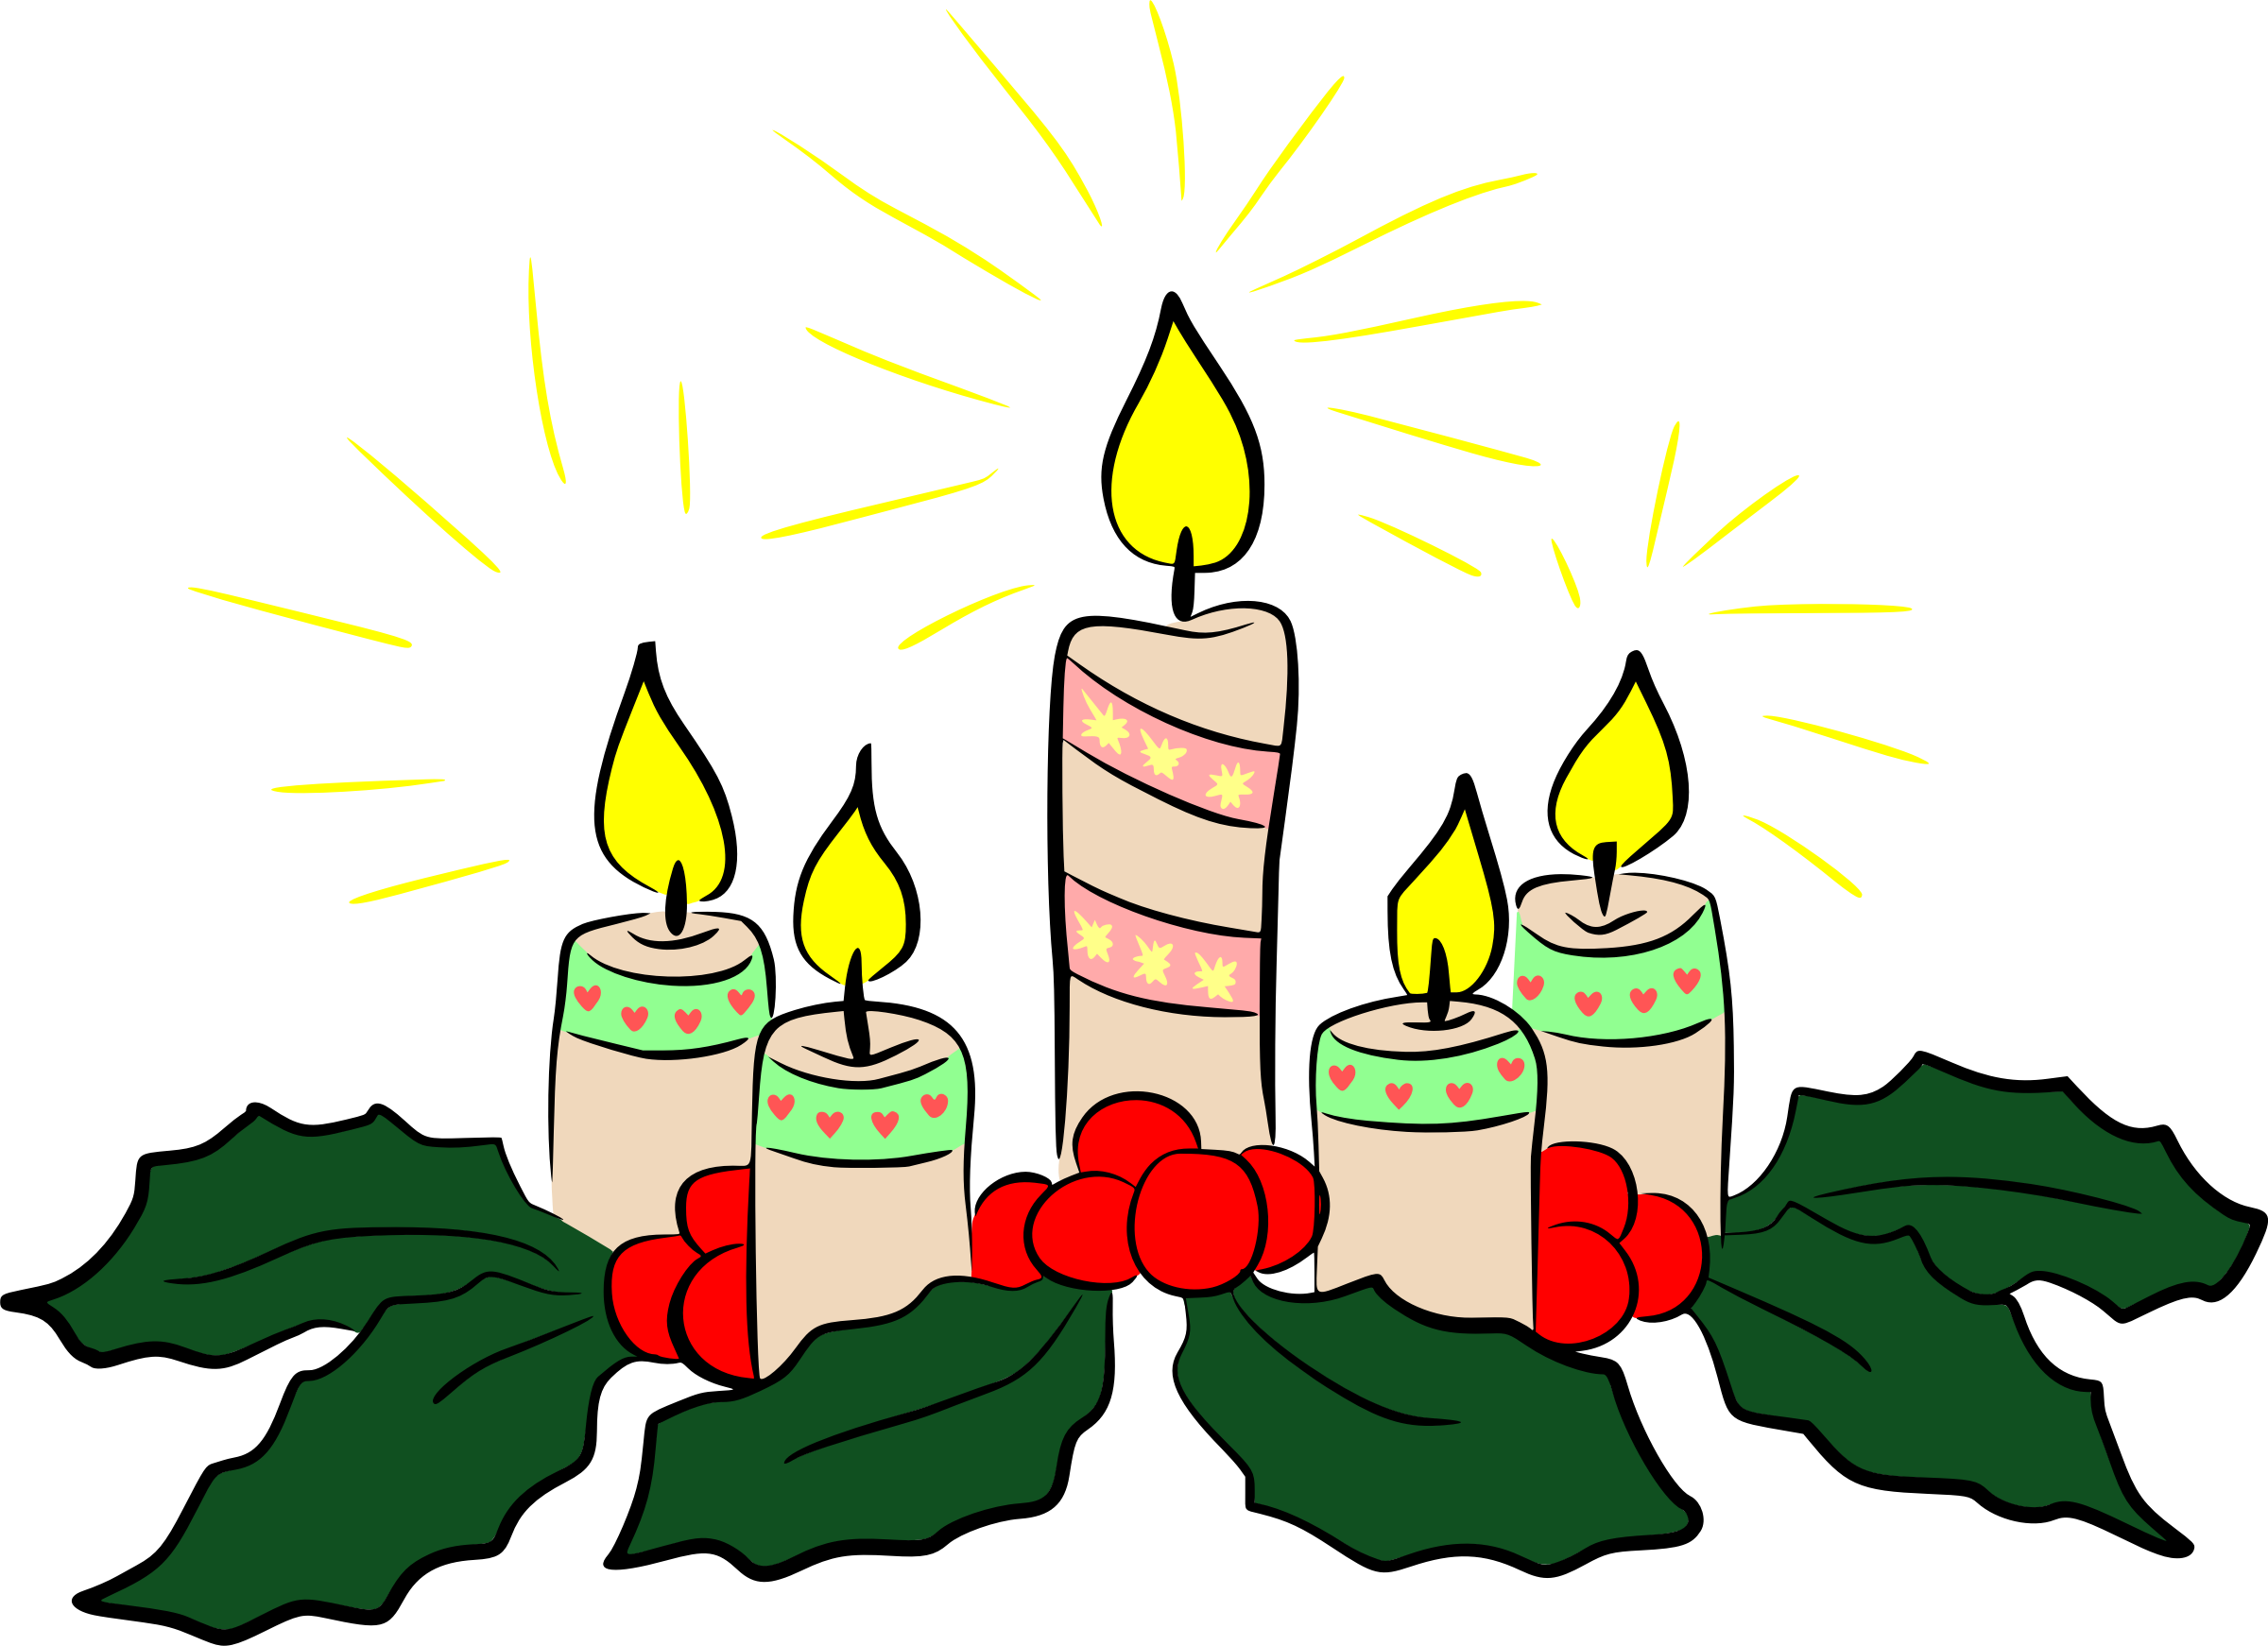 Christmas candles by Firkin